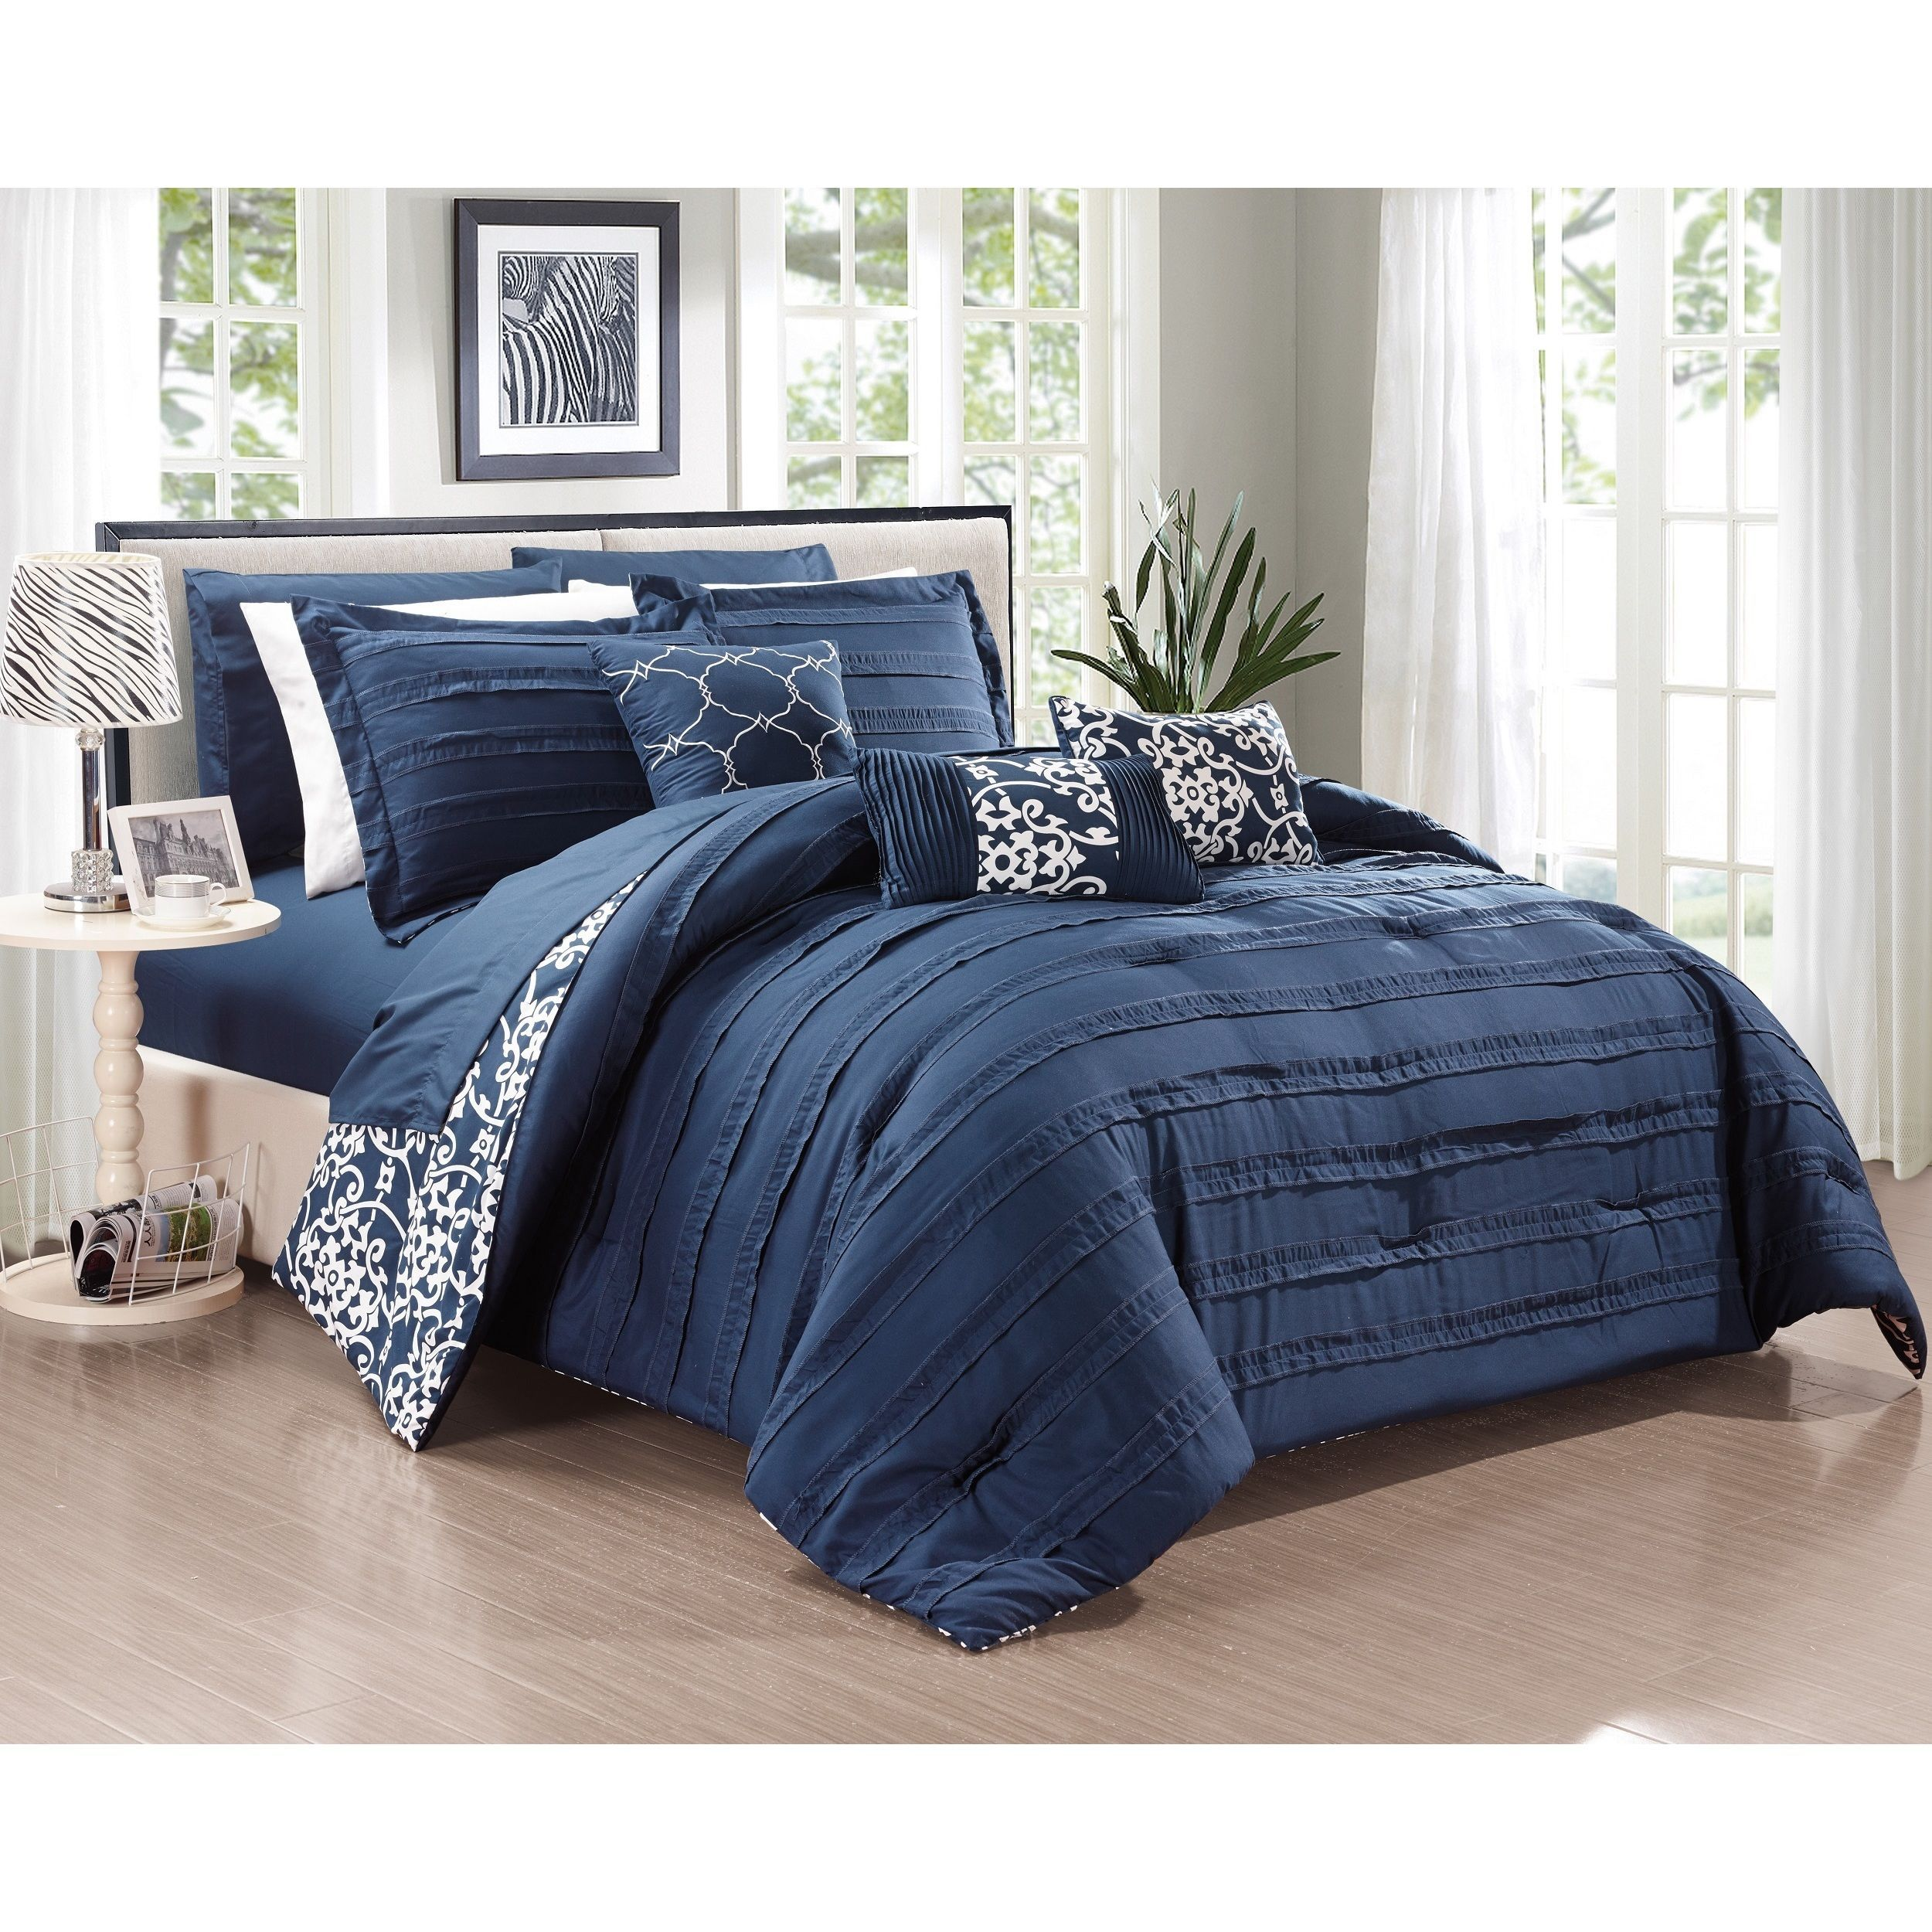 Overstock Com Online Shopping Bedding Furniture Electronics Jewelry Clothing More Comforter Sets Blue Comforter Sets Chic Home